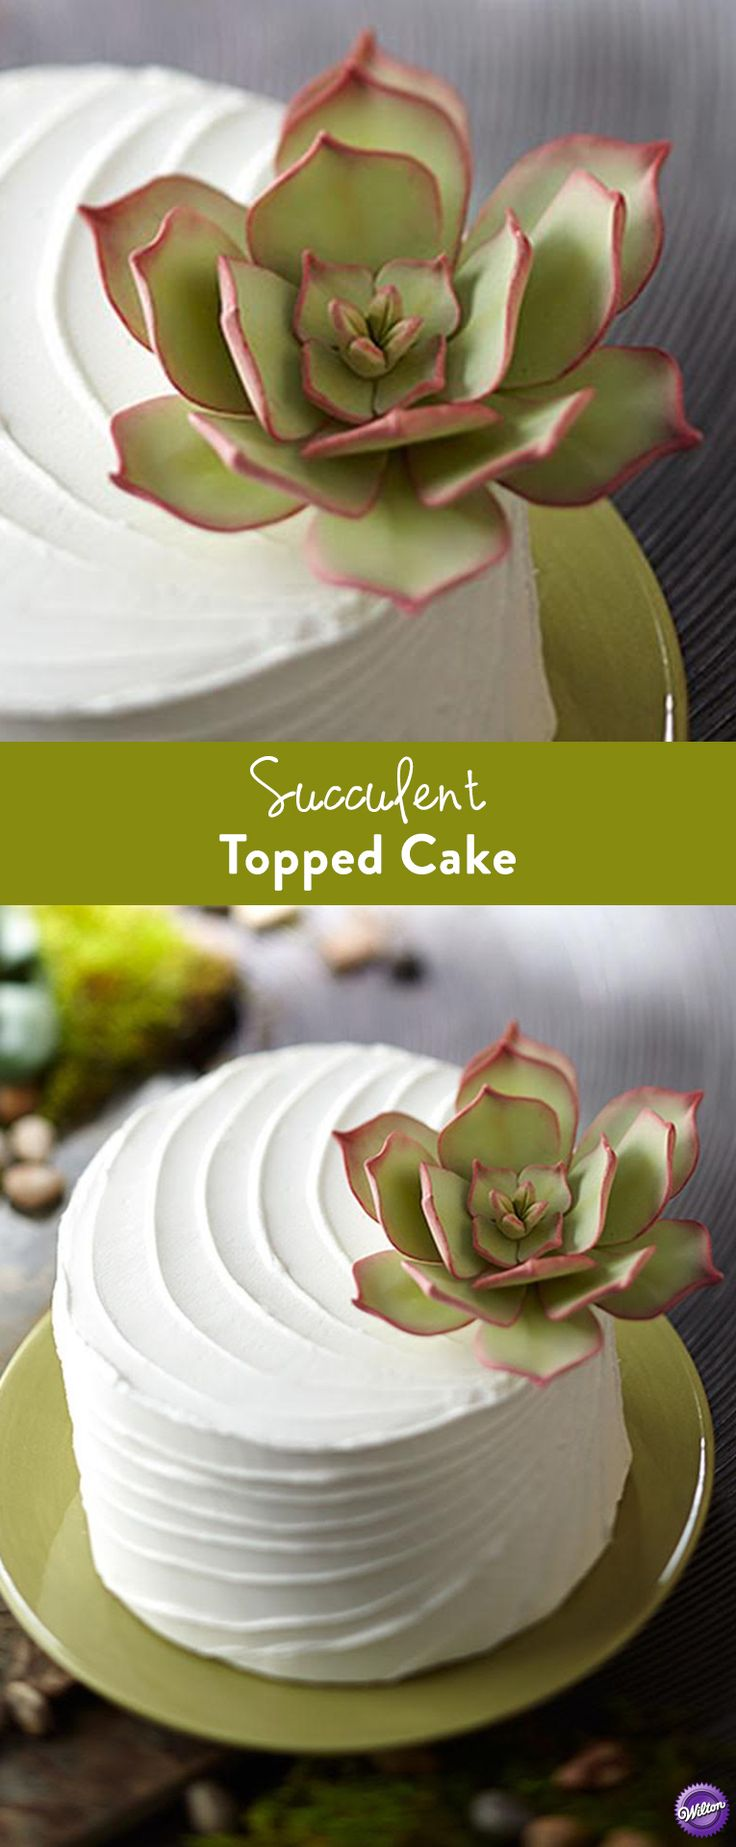 521 best cake techniques tutorials images on pinterest fondant how to make a succulent topped cake a fondant succulent plant adds a fresh izmirmasajfo Gallery